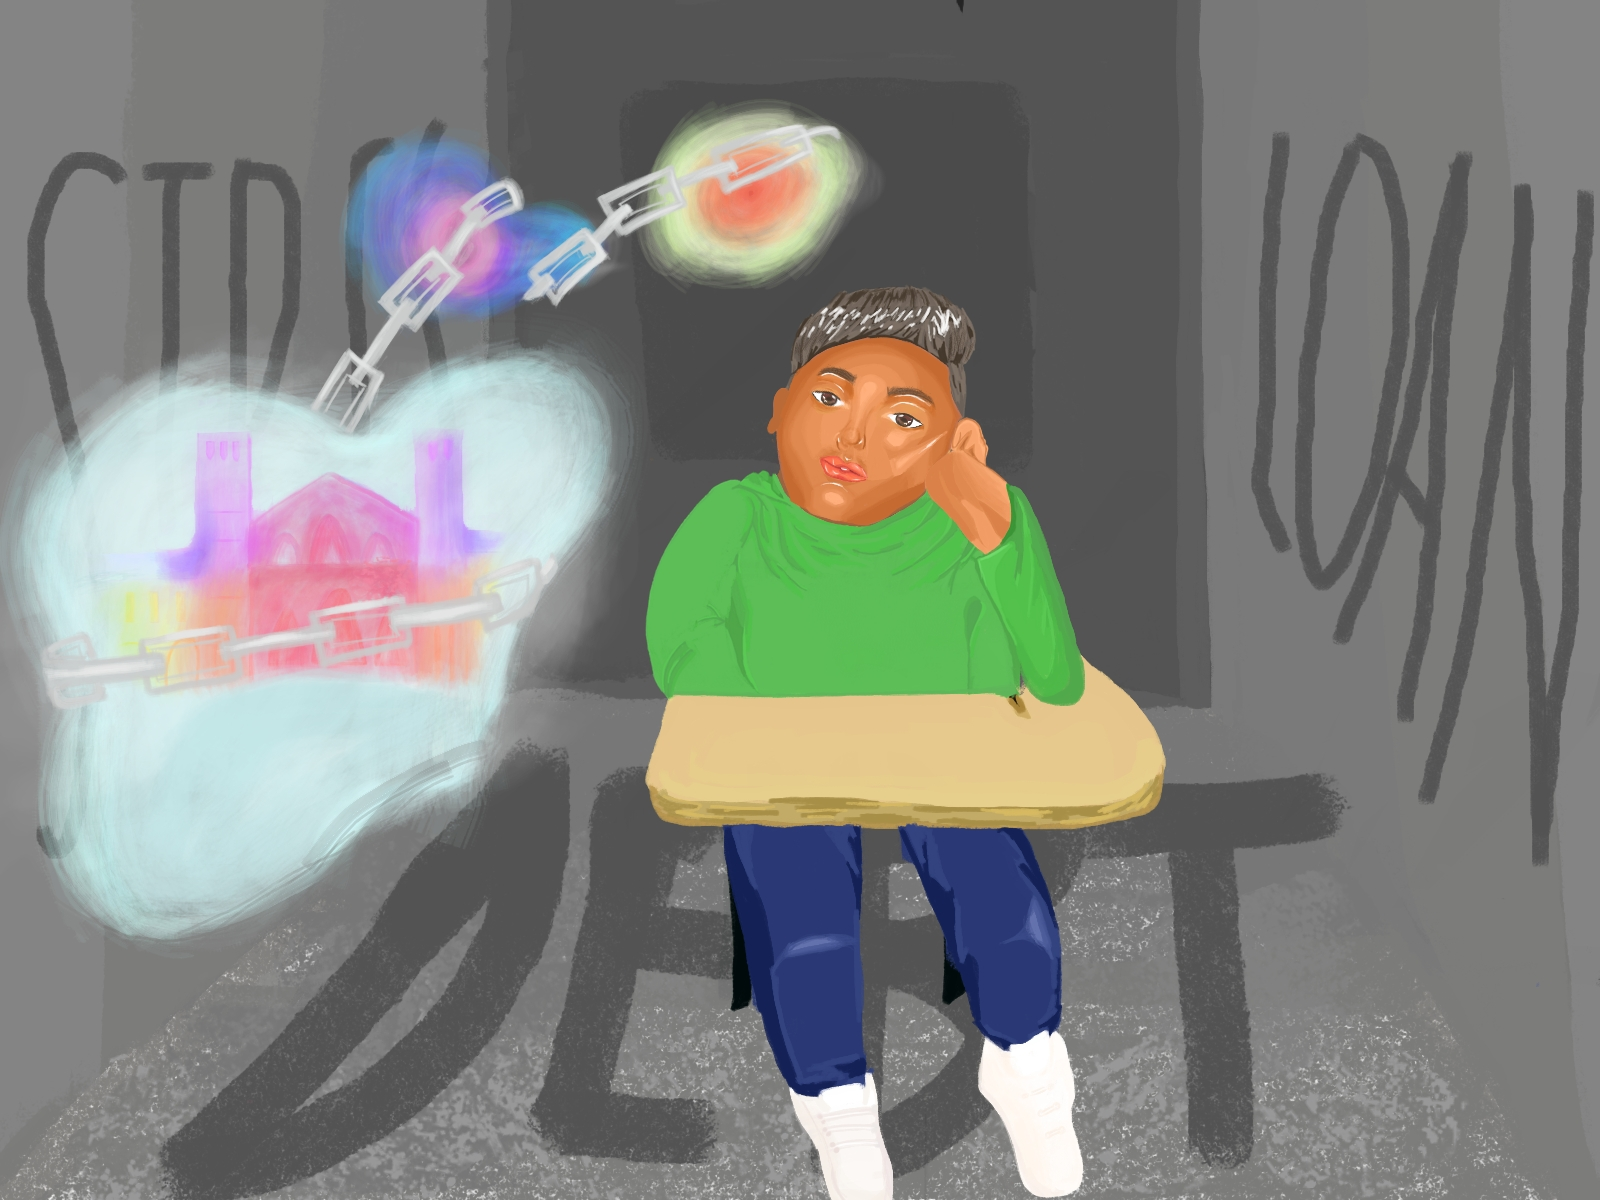 illustration of boy sitting at desk with image of Royce Hall in a dream bubble